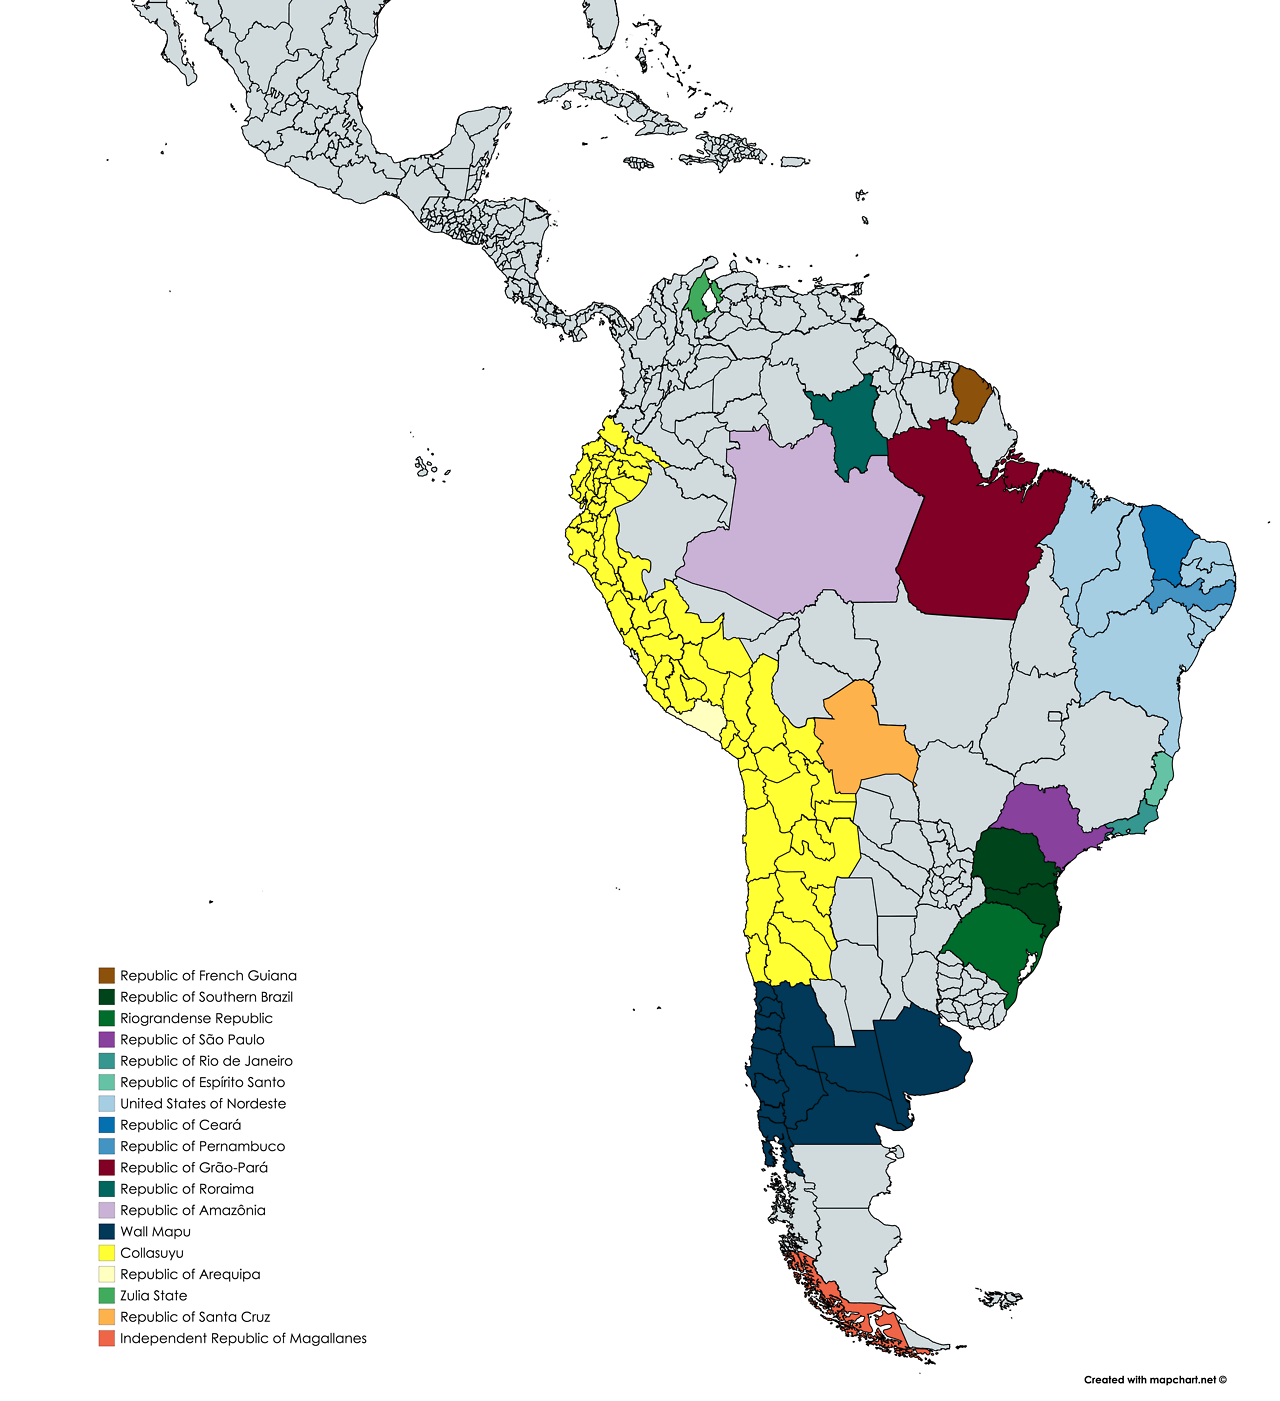 Current Separatist Movements in South America Country Names